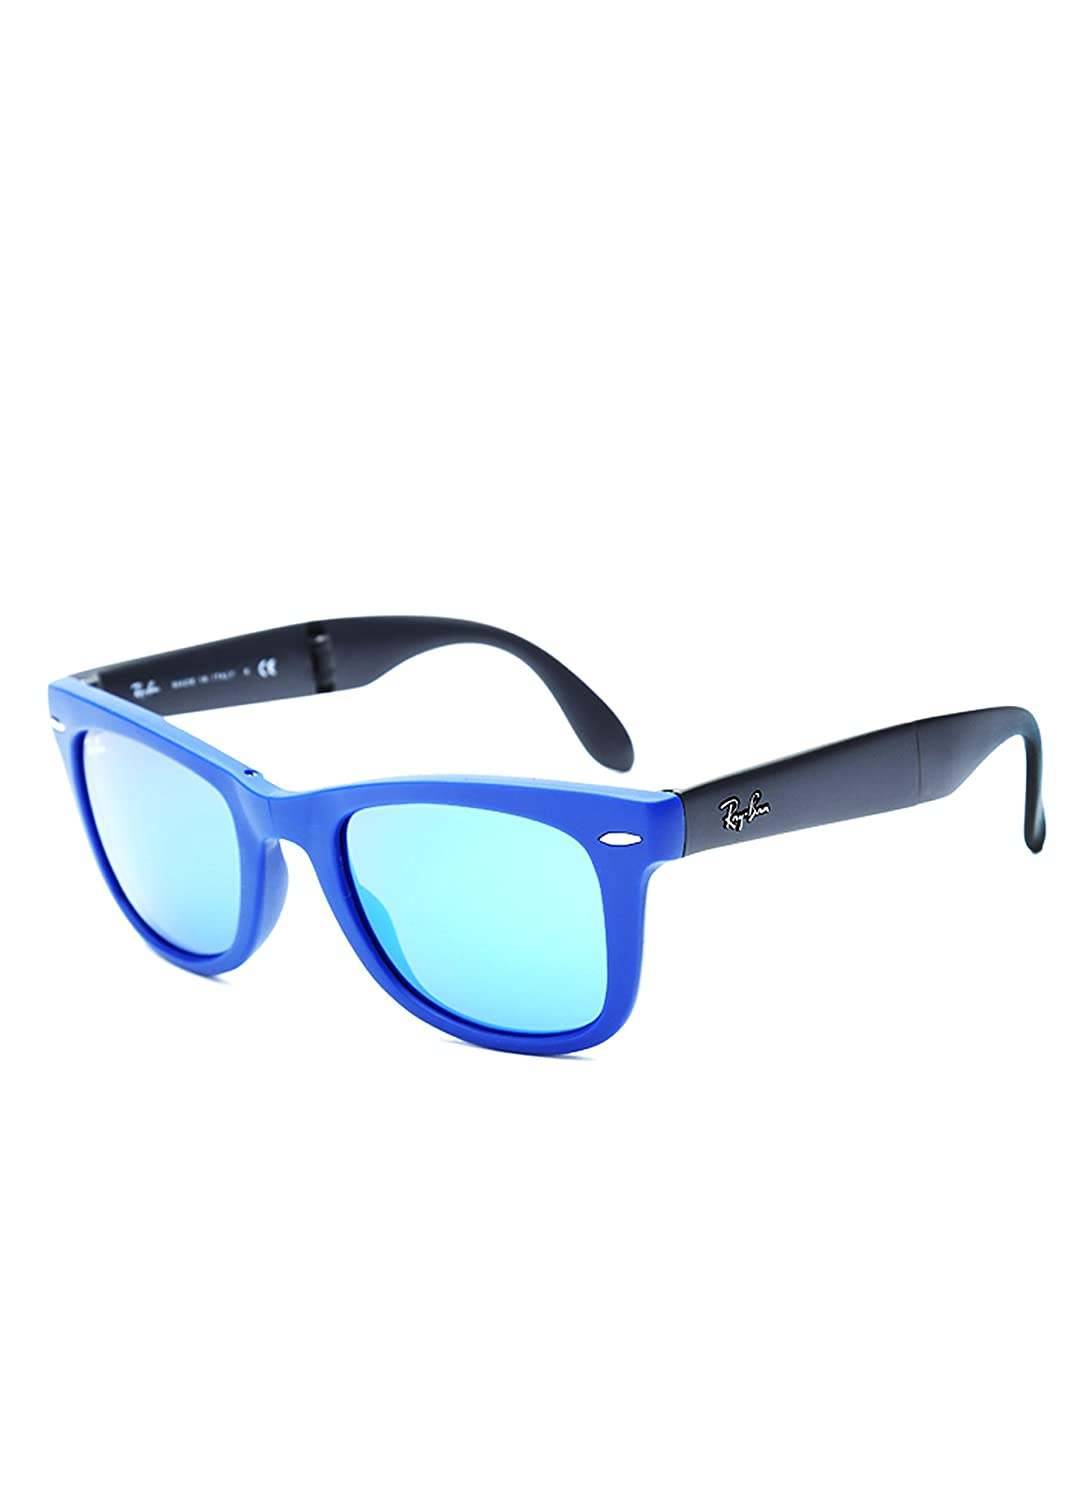 Ray-Ban Folding Wayfarer RB4105 C54